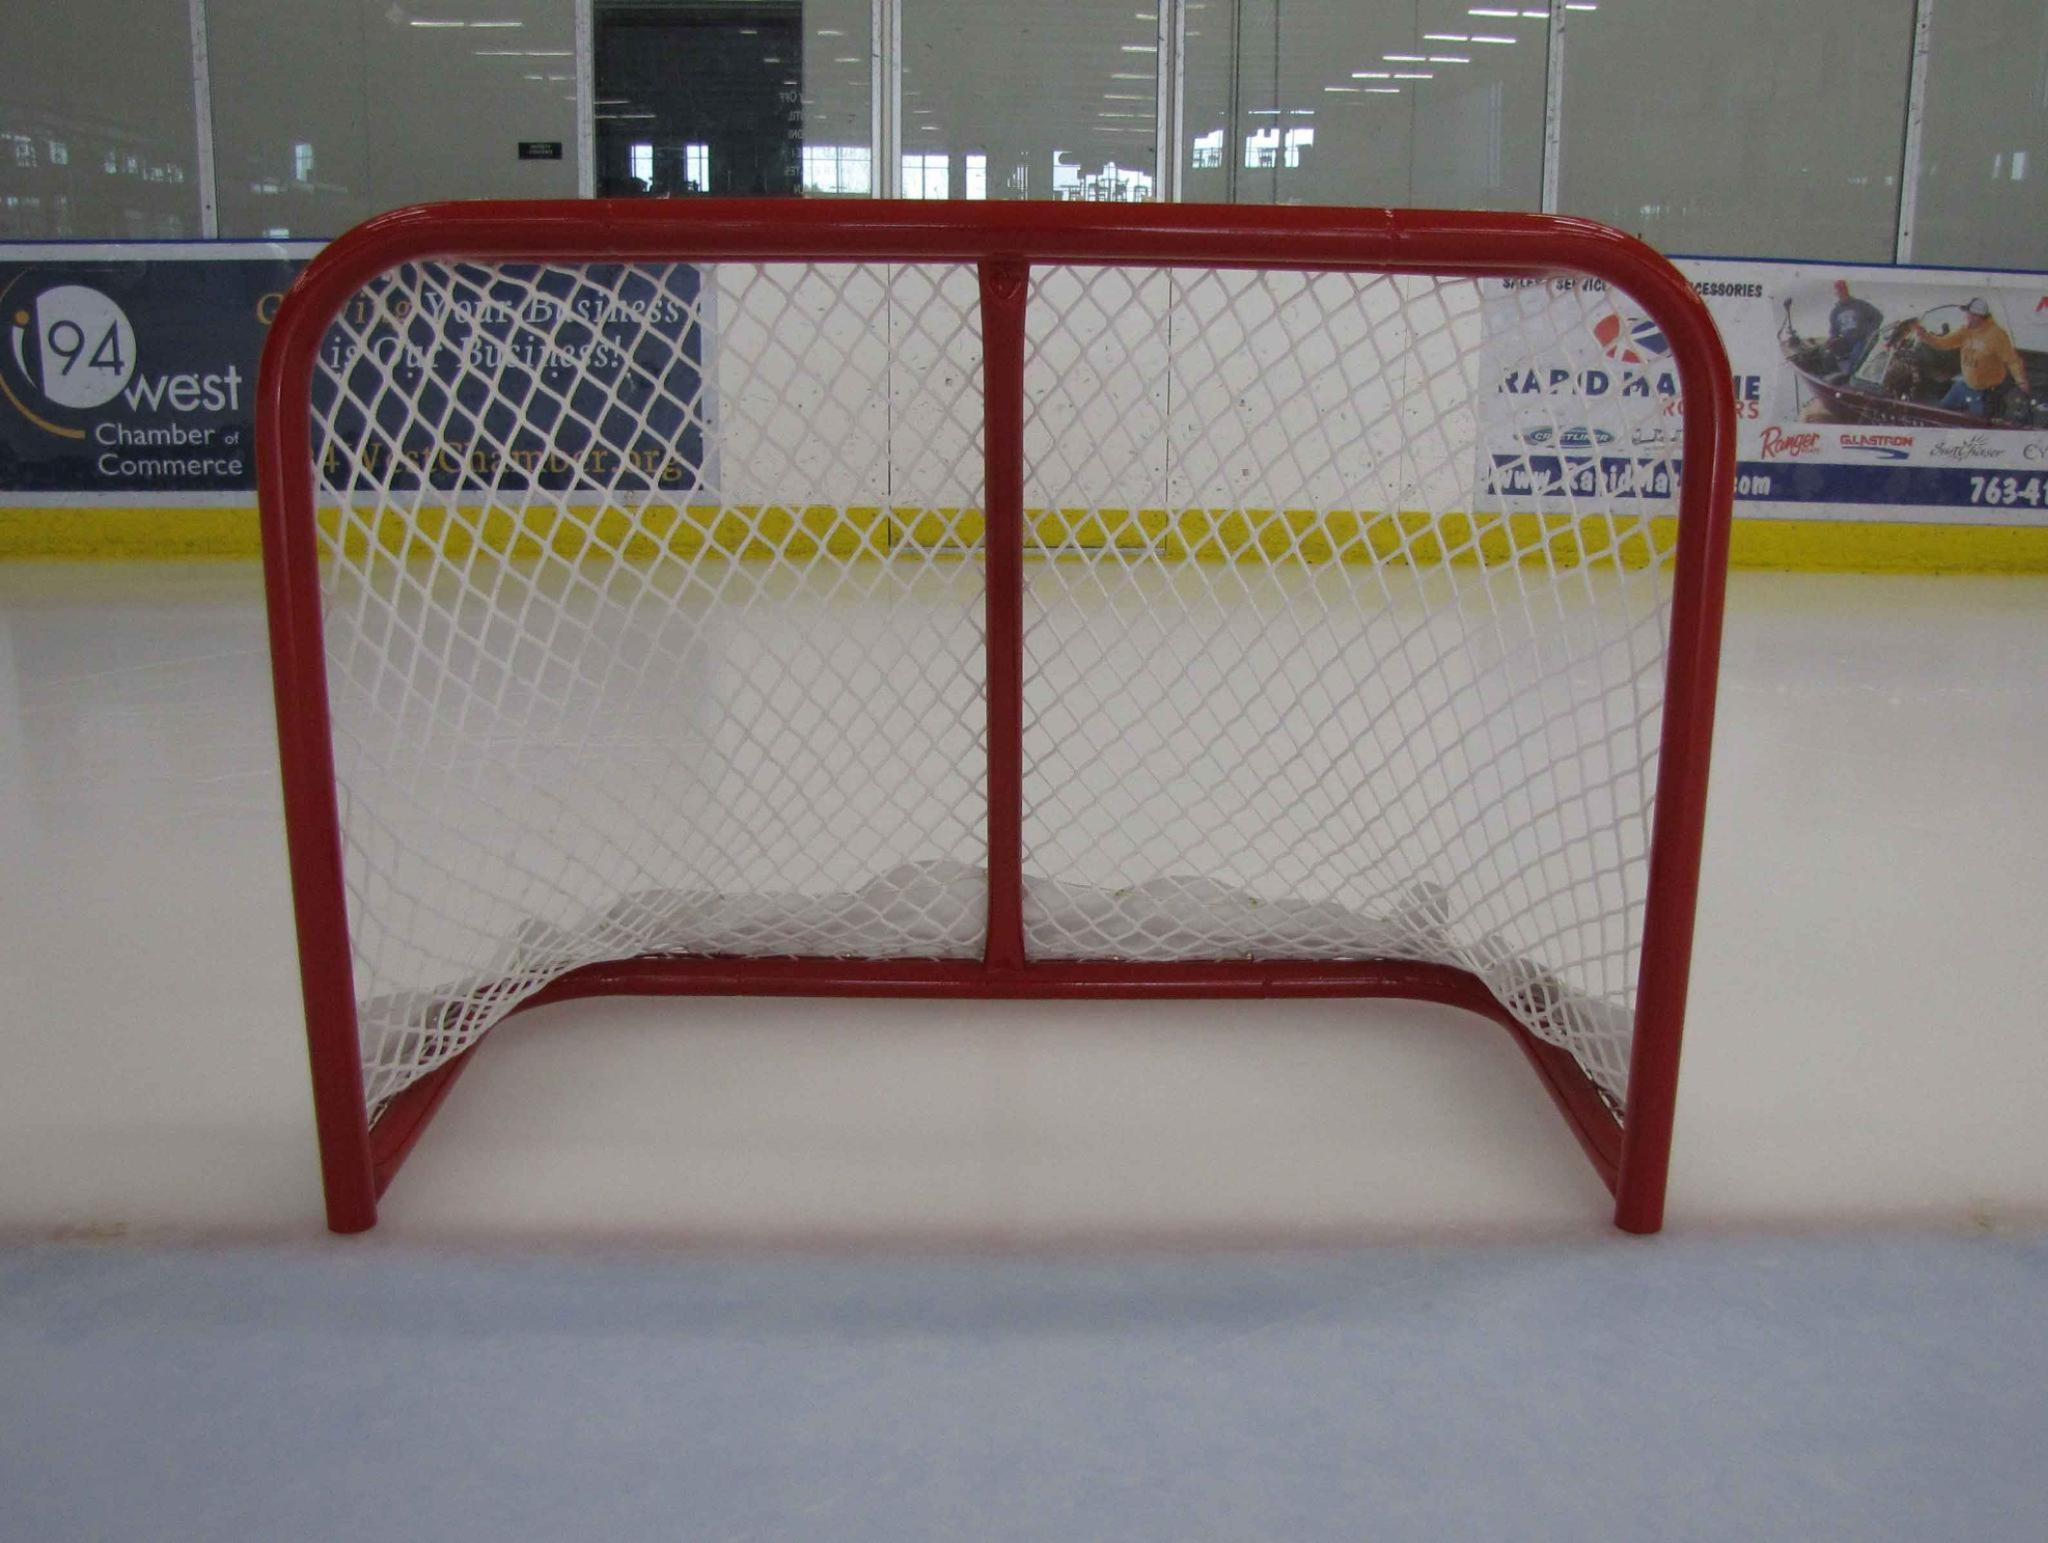 "4' x 3' Cross-Ice Steel Hockey Goal Frame; 24"" Rectangular Base Depth; Welded Lacing Bar for Attaching Net; Red Powder-Coated Finish; Age 8U Players."